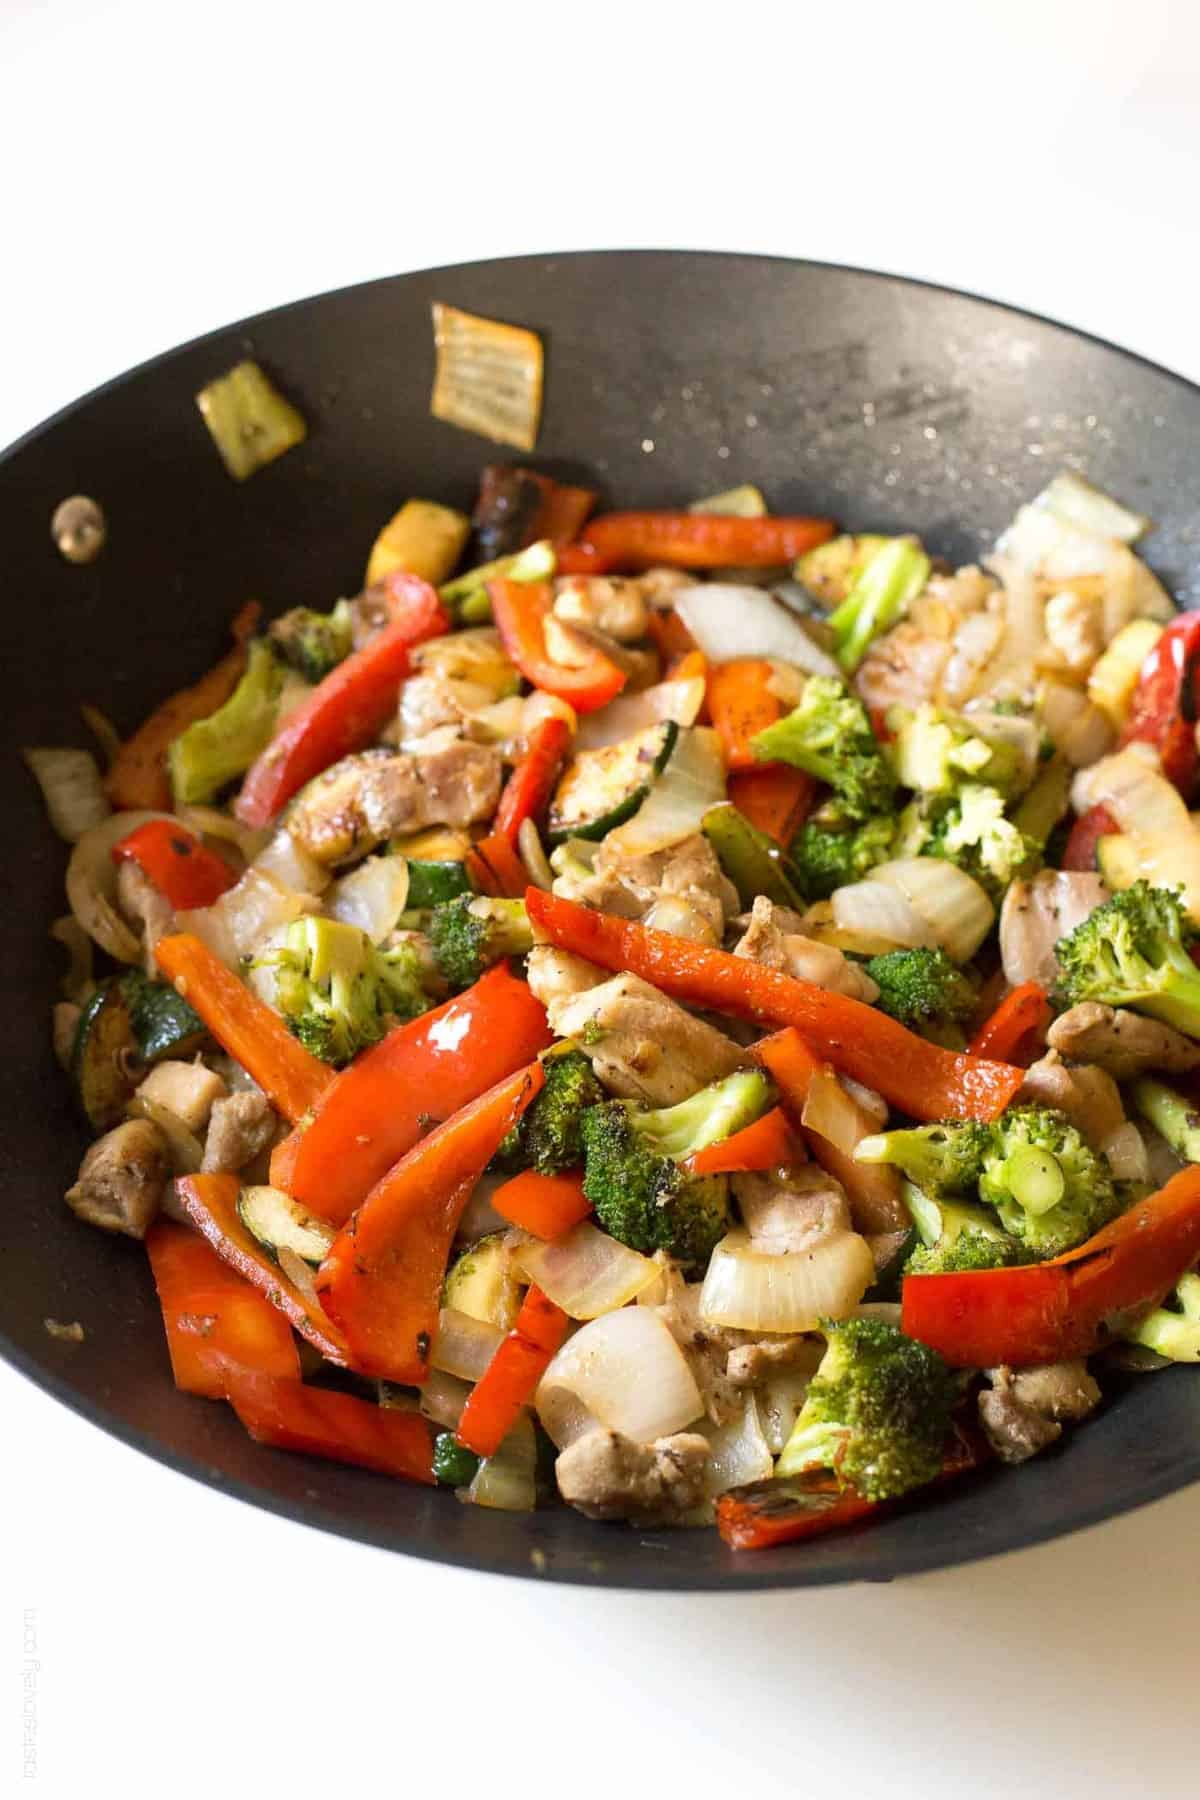 Broccoli-and-bell-pepper-chicken-stir-fry-made-with-the-BEST-stir-fry-sauce-3